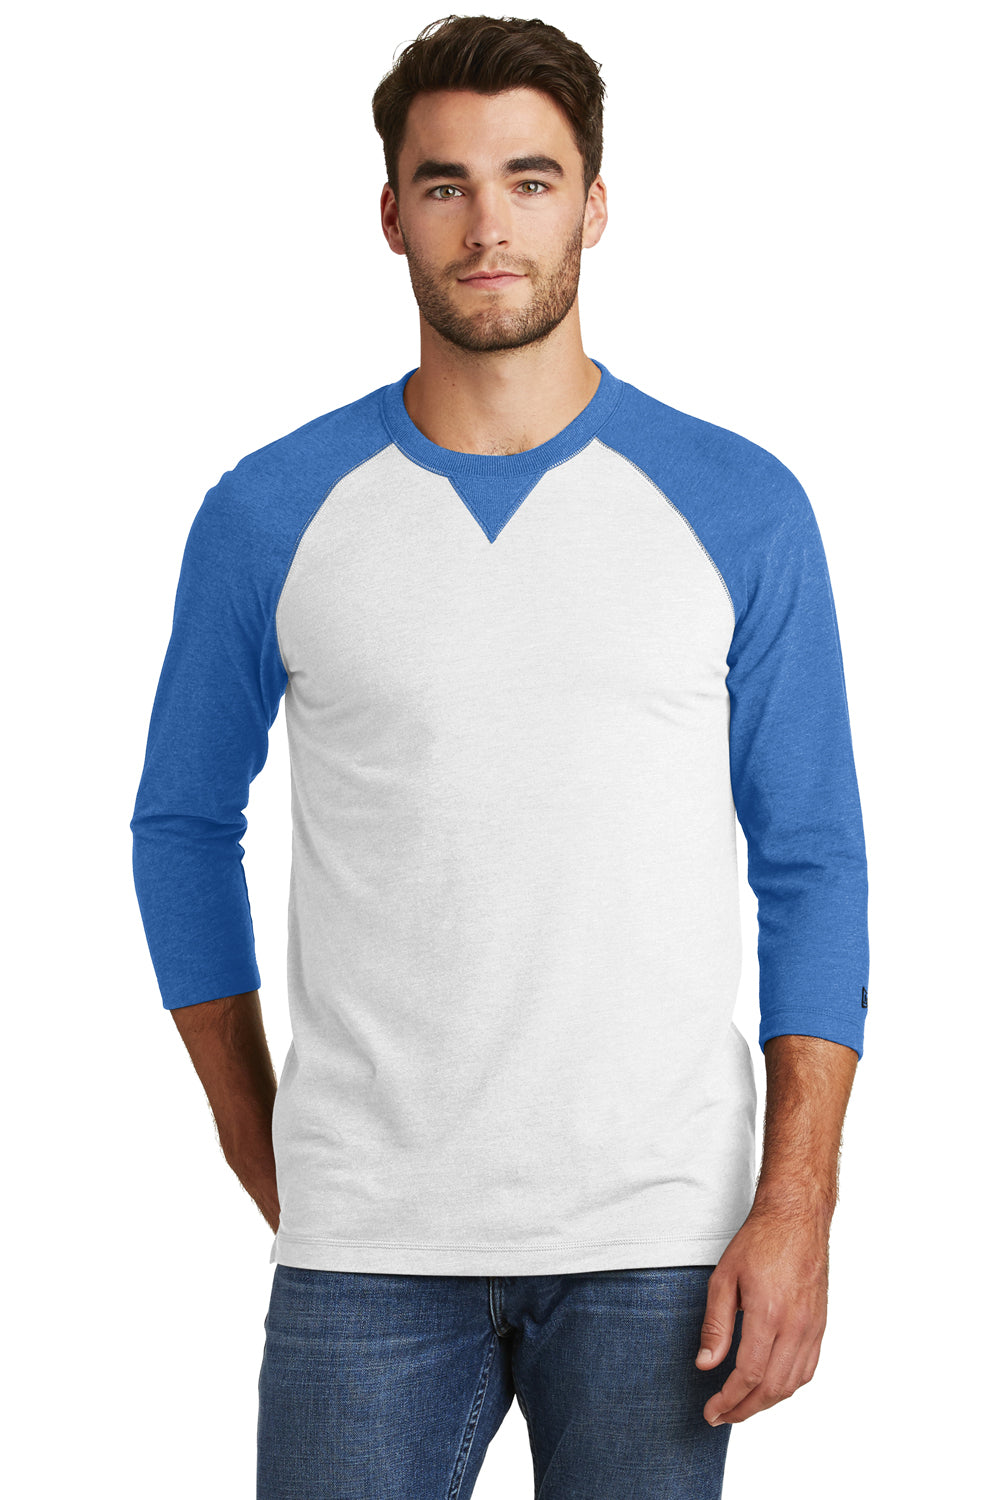 New Era NEA121 Mens Sueded 3/4 Sleeve Crewneck T-Shirt Heather Royal Blue/White Front